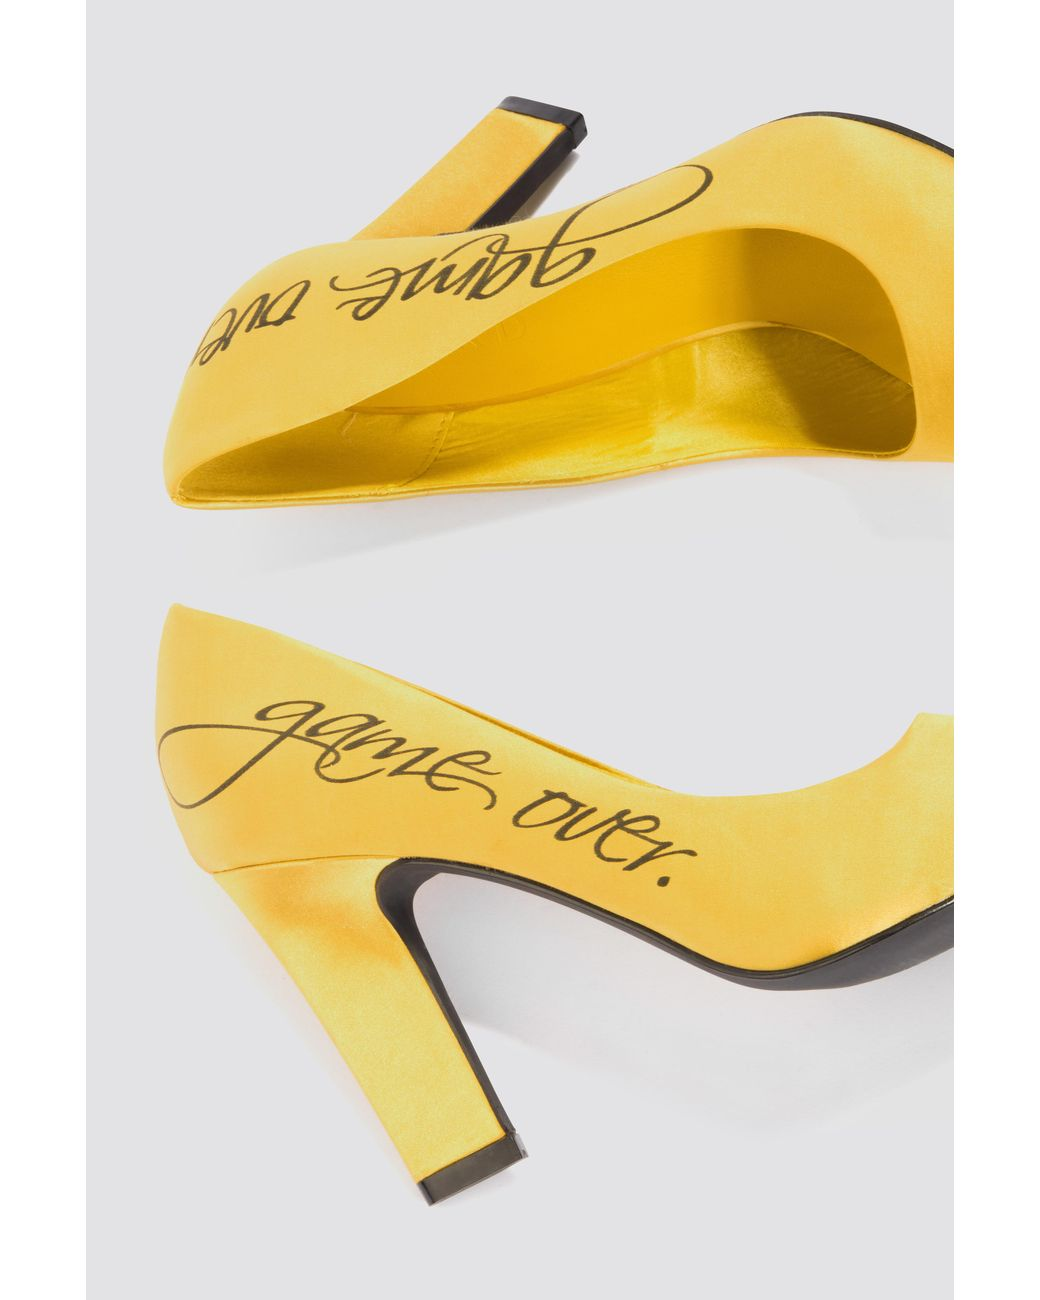 ff52270a0c1 Women's Game Over Satin Pumps Yellow